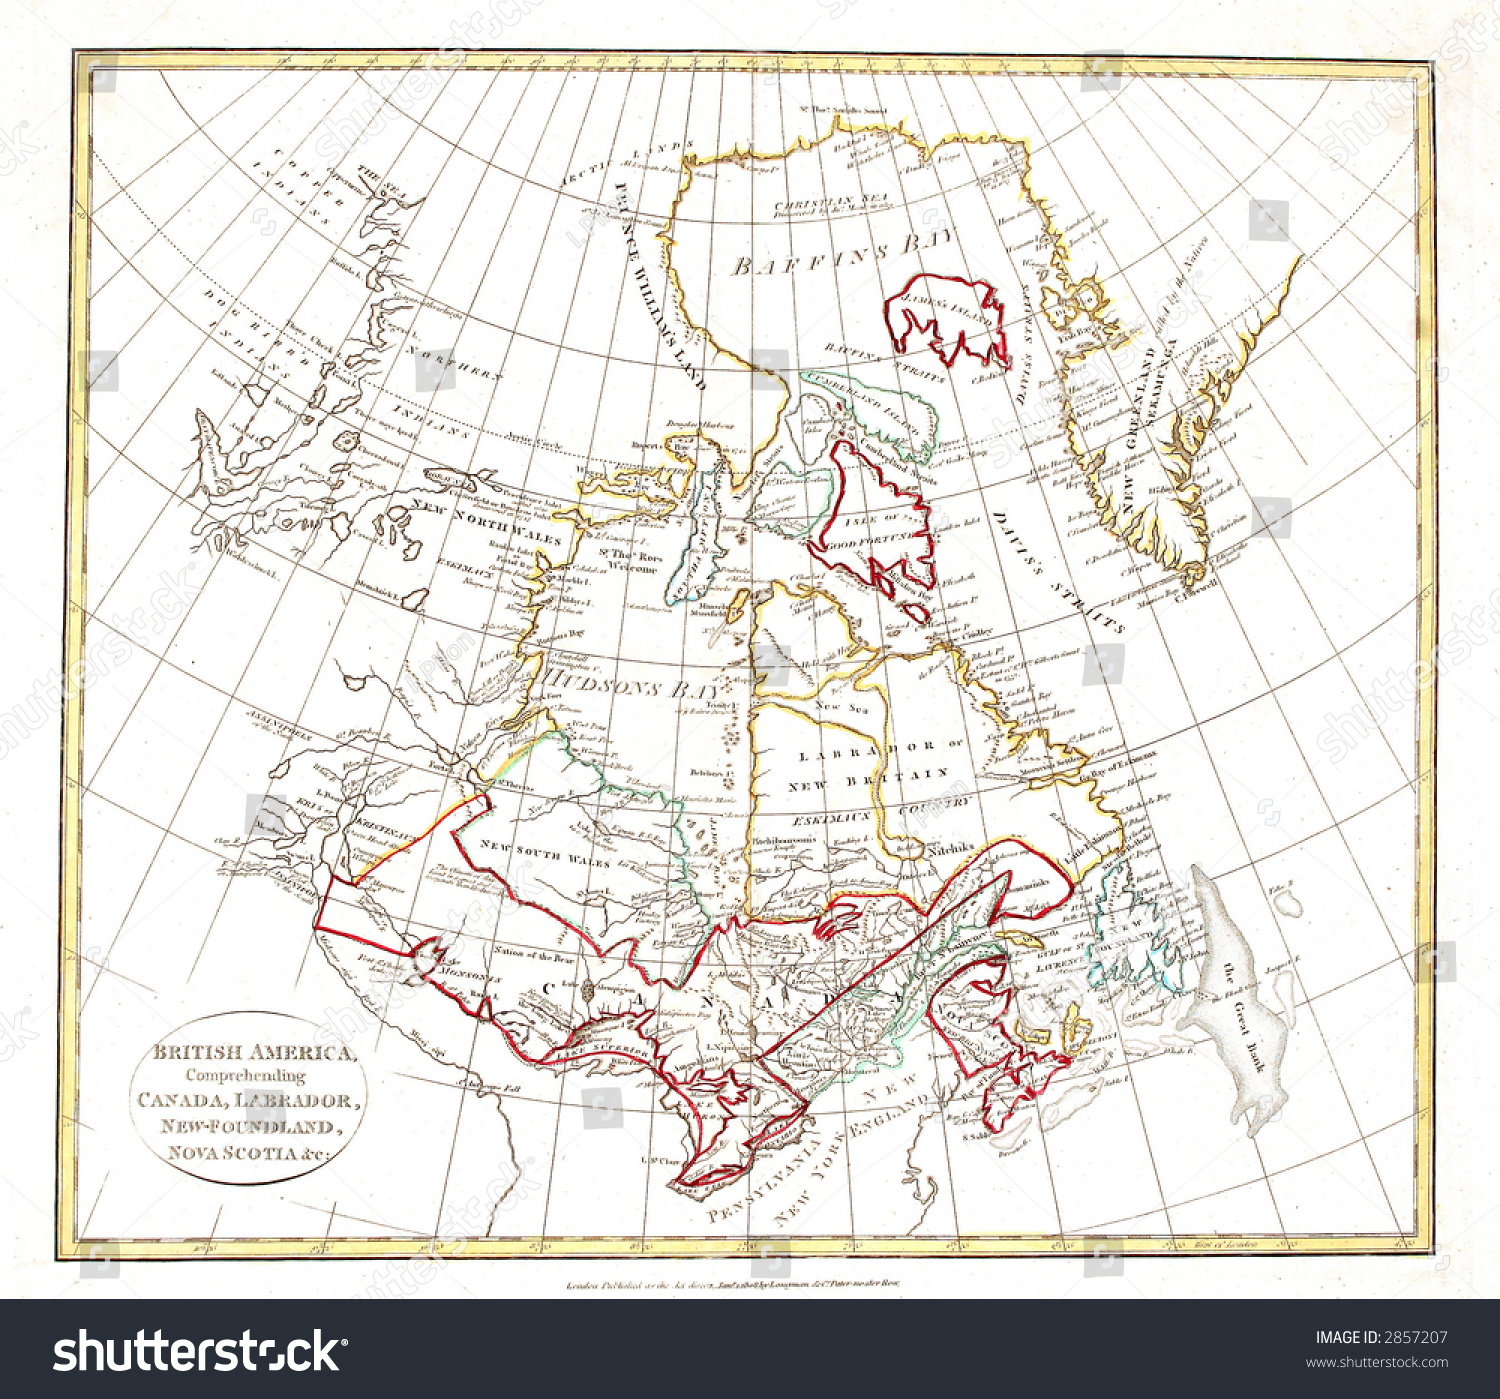 early map of eastern canada greenland and the arctic printed in london 1808